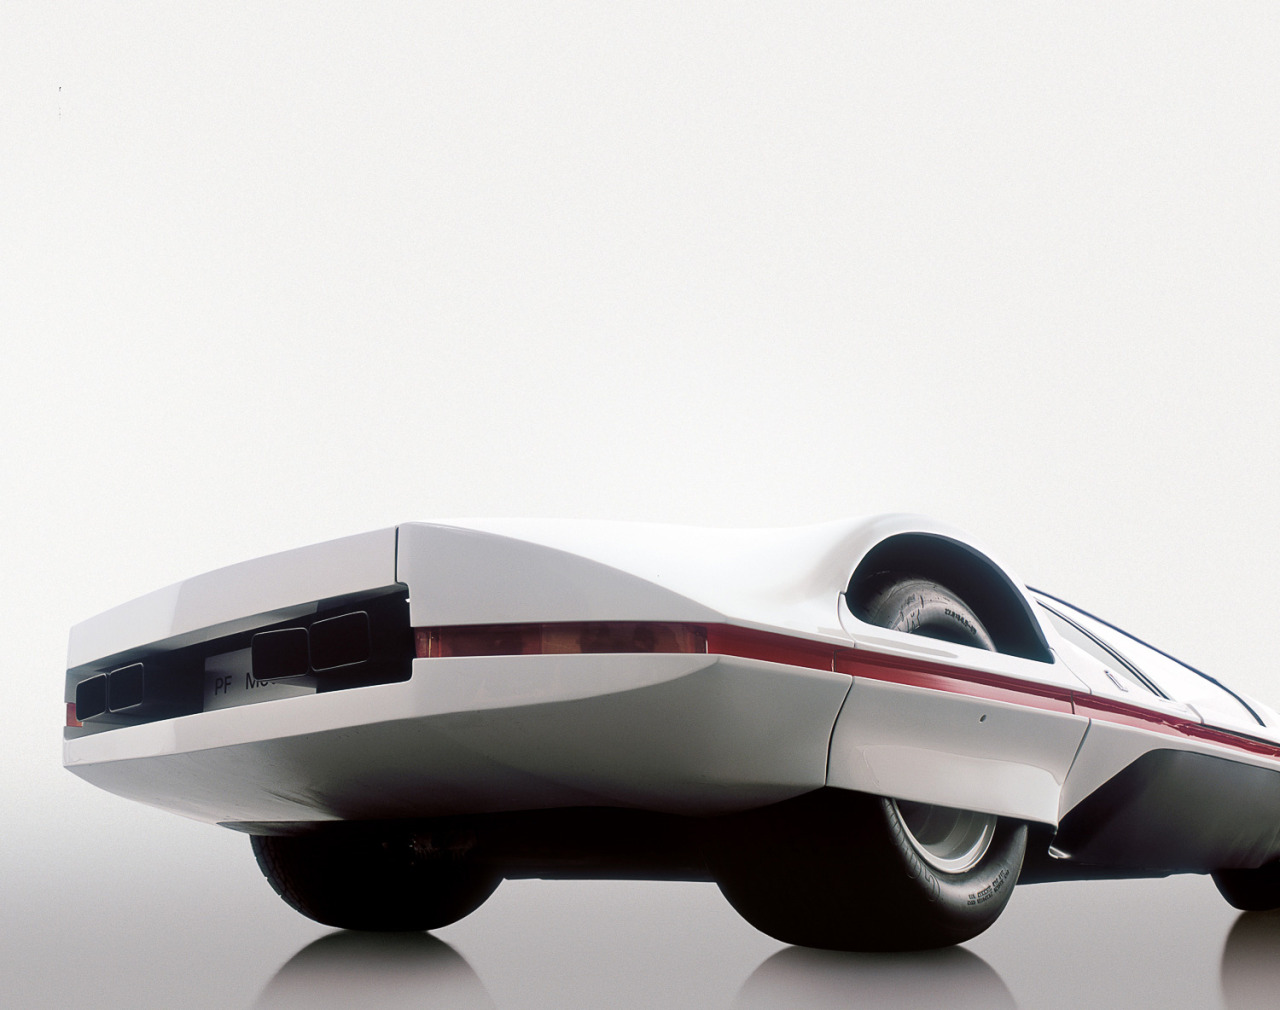 The Ferrari Modulo was created by iconic automotive design firm Pininfarina in 1970 on commission from Ferrari. Photo by Benedict Redgrove. Pininfarina set about creating a highly futuristic, mid-engined, semi-monocoque concept car powered by Ferrari's advanced 5.0 litre V12. The Modulo was built as a fully functioning road car and to this day still starts up and runs when you hit the on button.